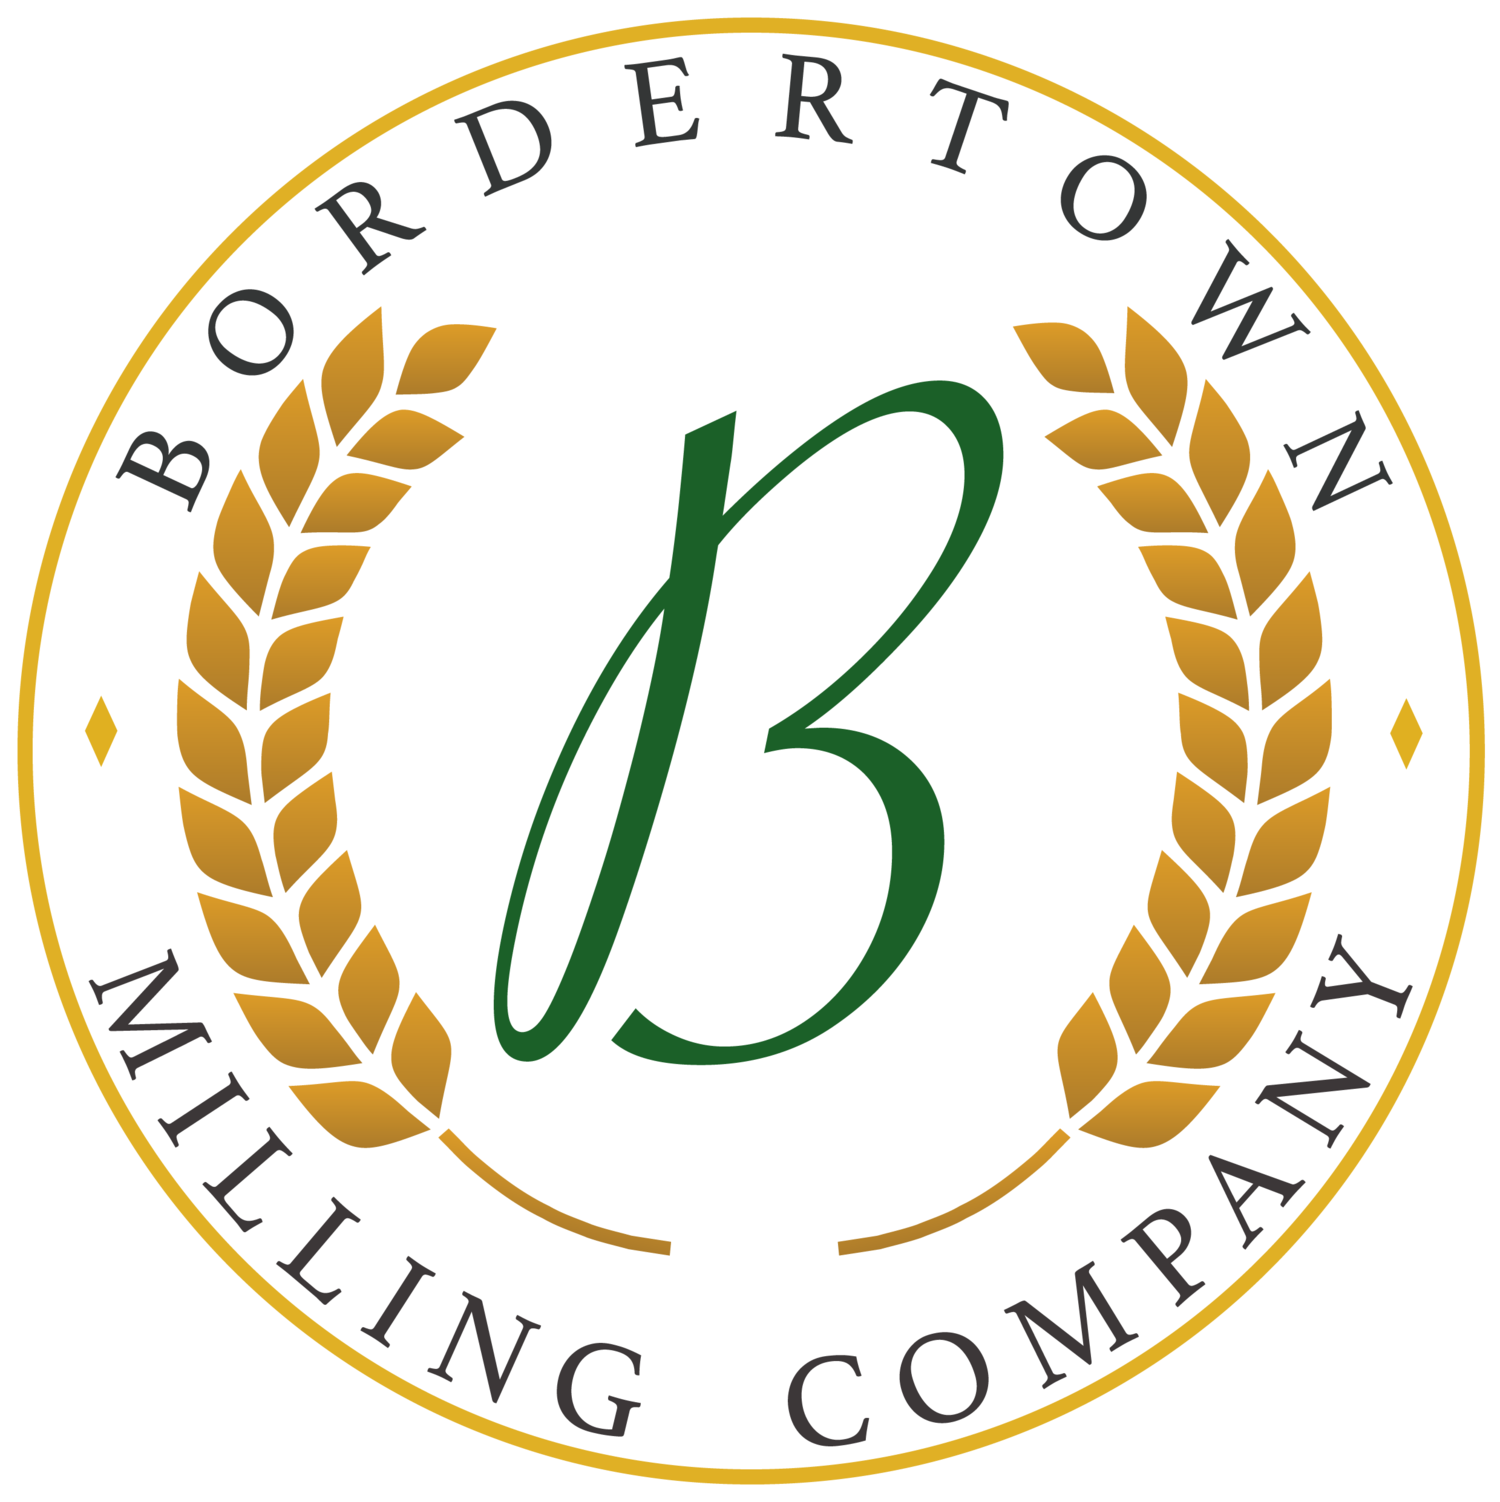 The Bordertown Milling Company